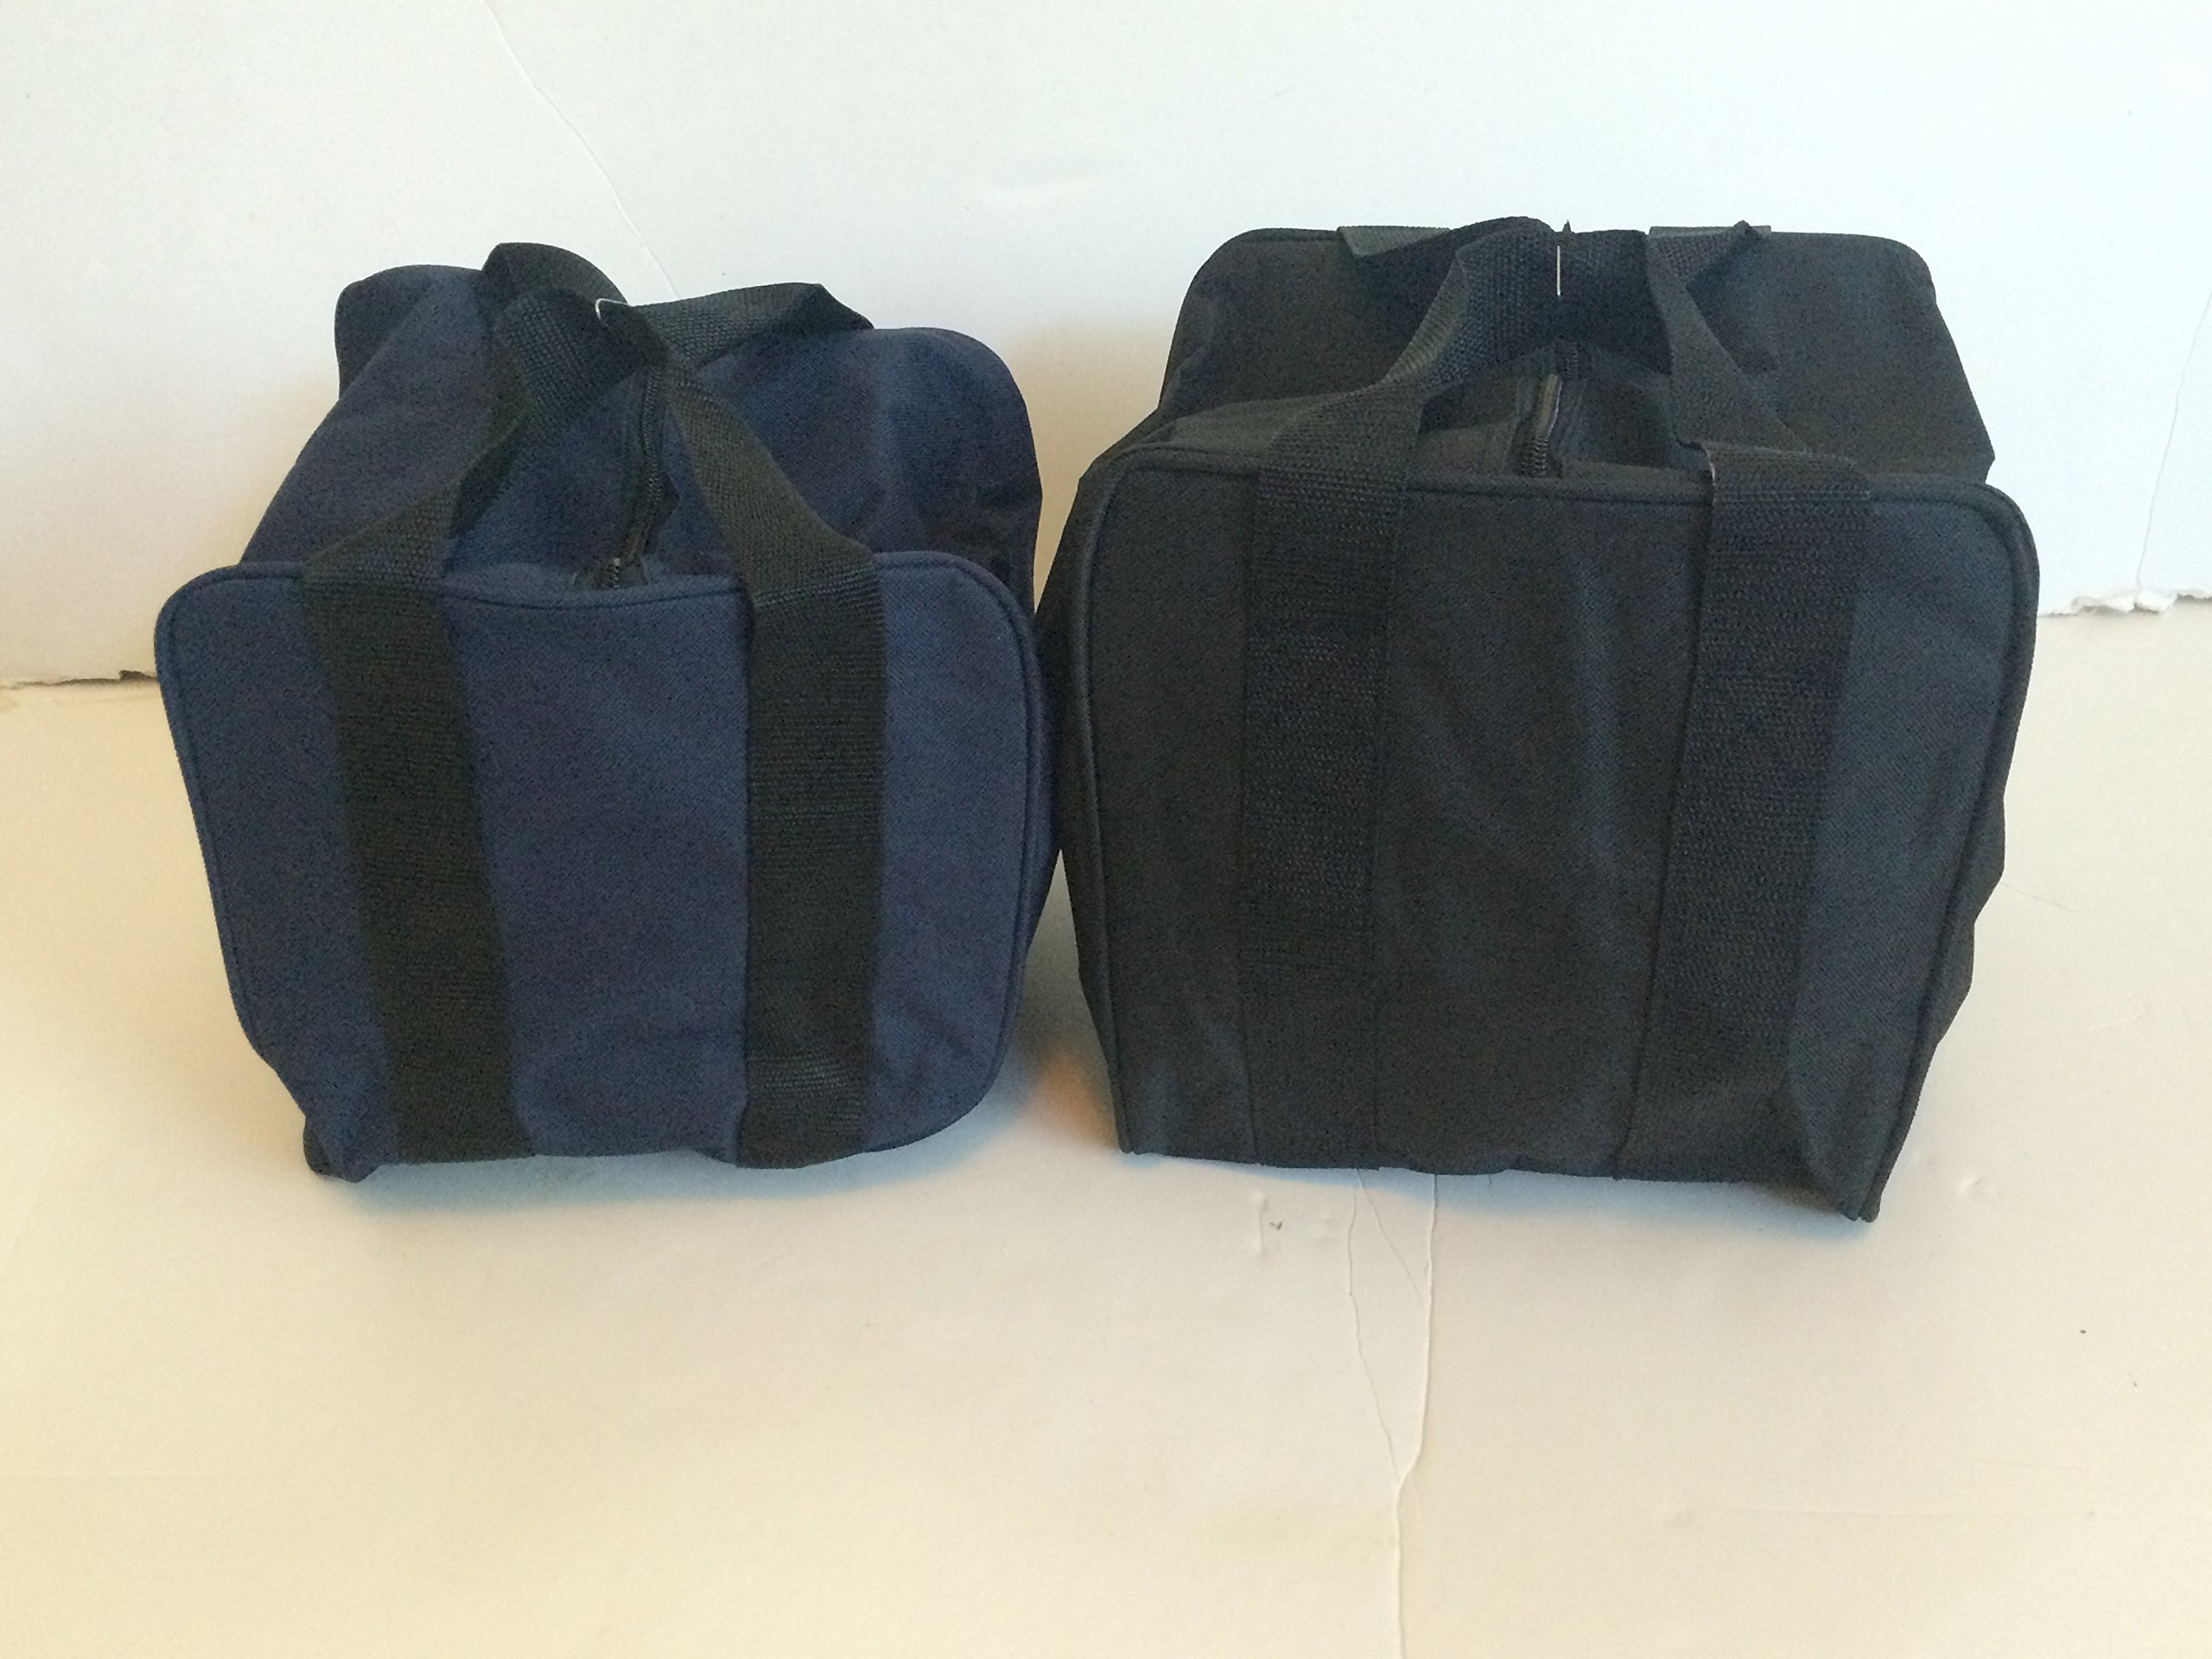 Unique Package - Pack of 2 Extra Heavy Duty Nylon Bocce Bags - Blue with Black Handles and Black with Black Handles by BuyBocceBalls